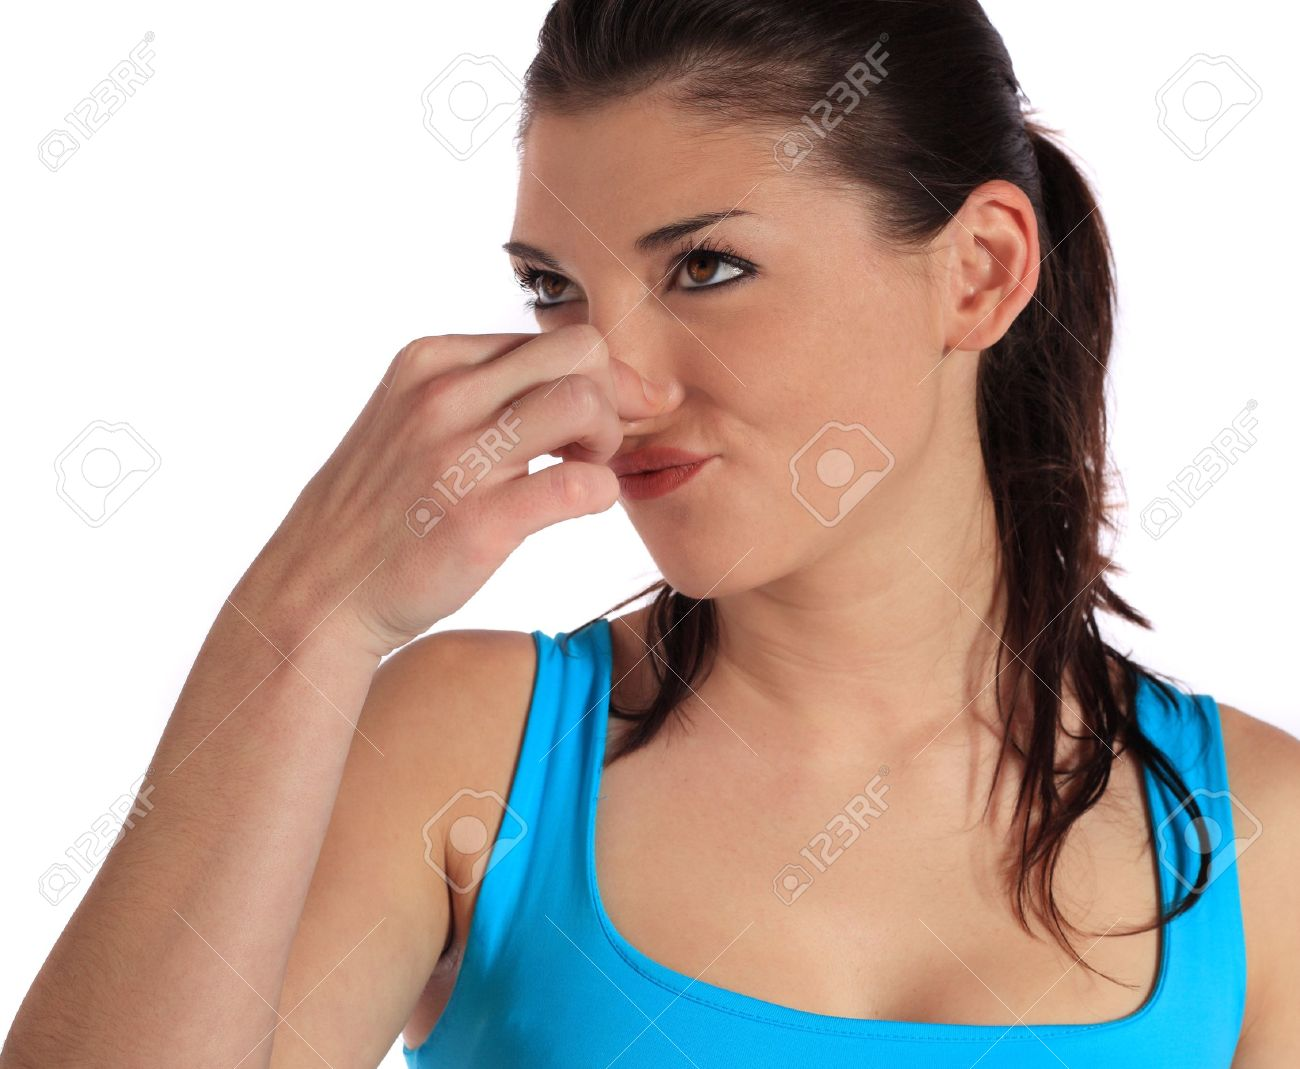 Attractive young woman smells something ugly. All on white background. Stock Photo - 8510483